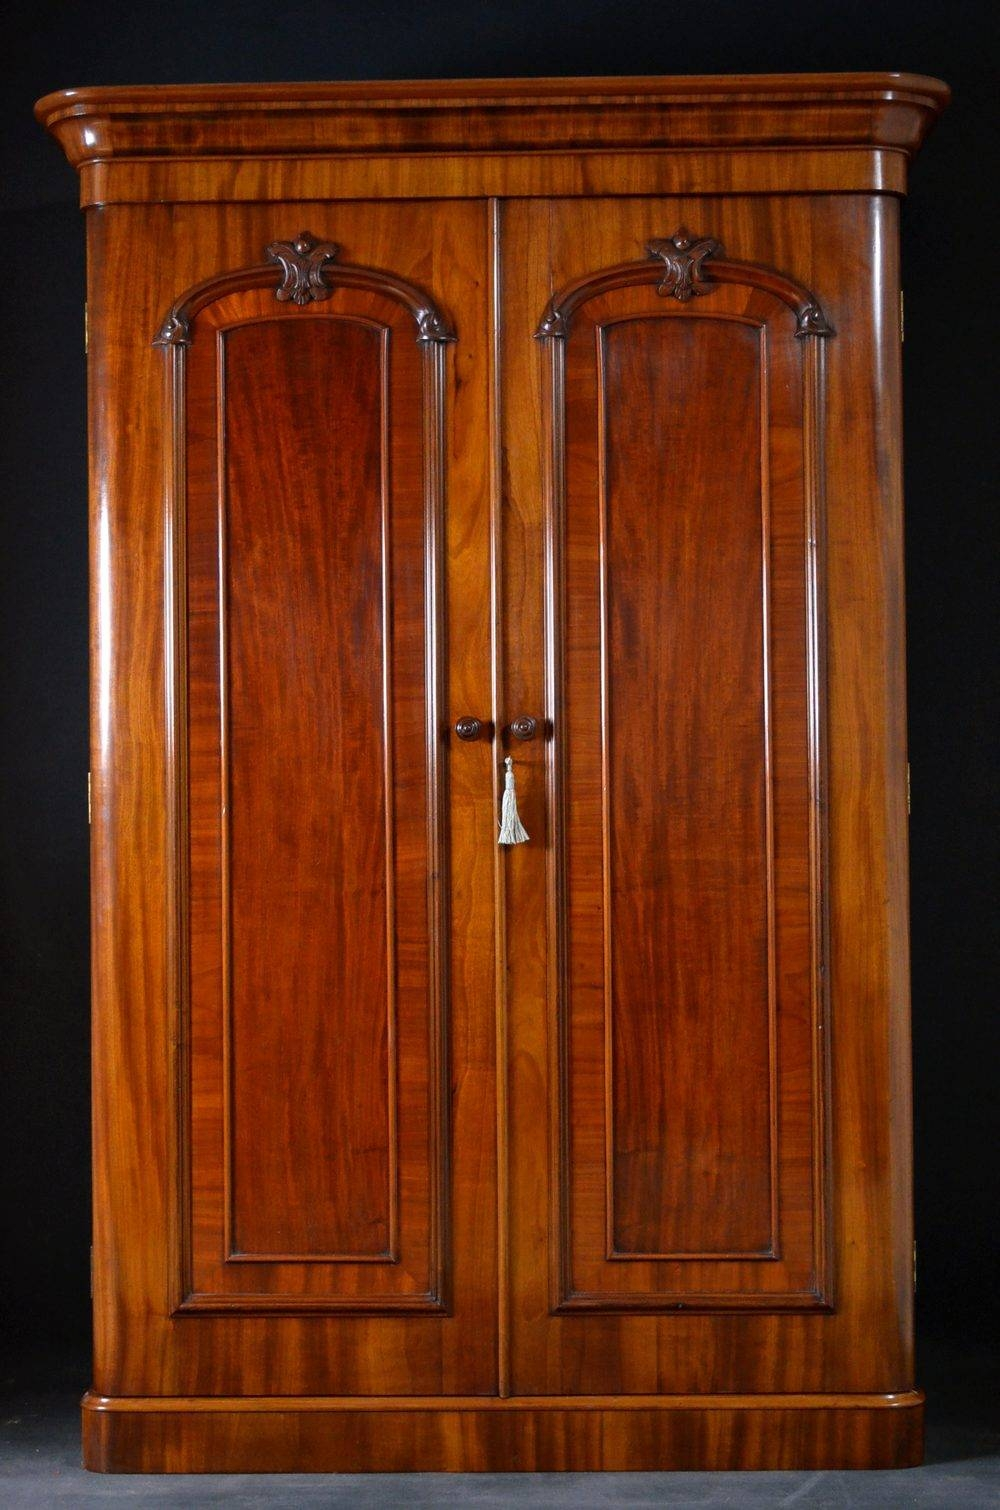 Victorian Wardrobe Images - Reverse Search pertaining to Victorian Mahogany Breakfront Wardrobe (Image 29 of 30)